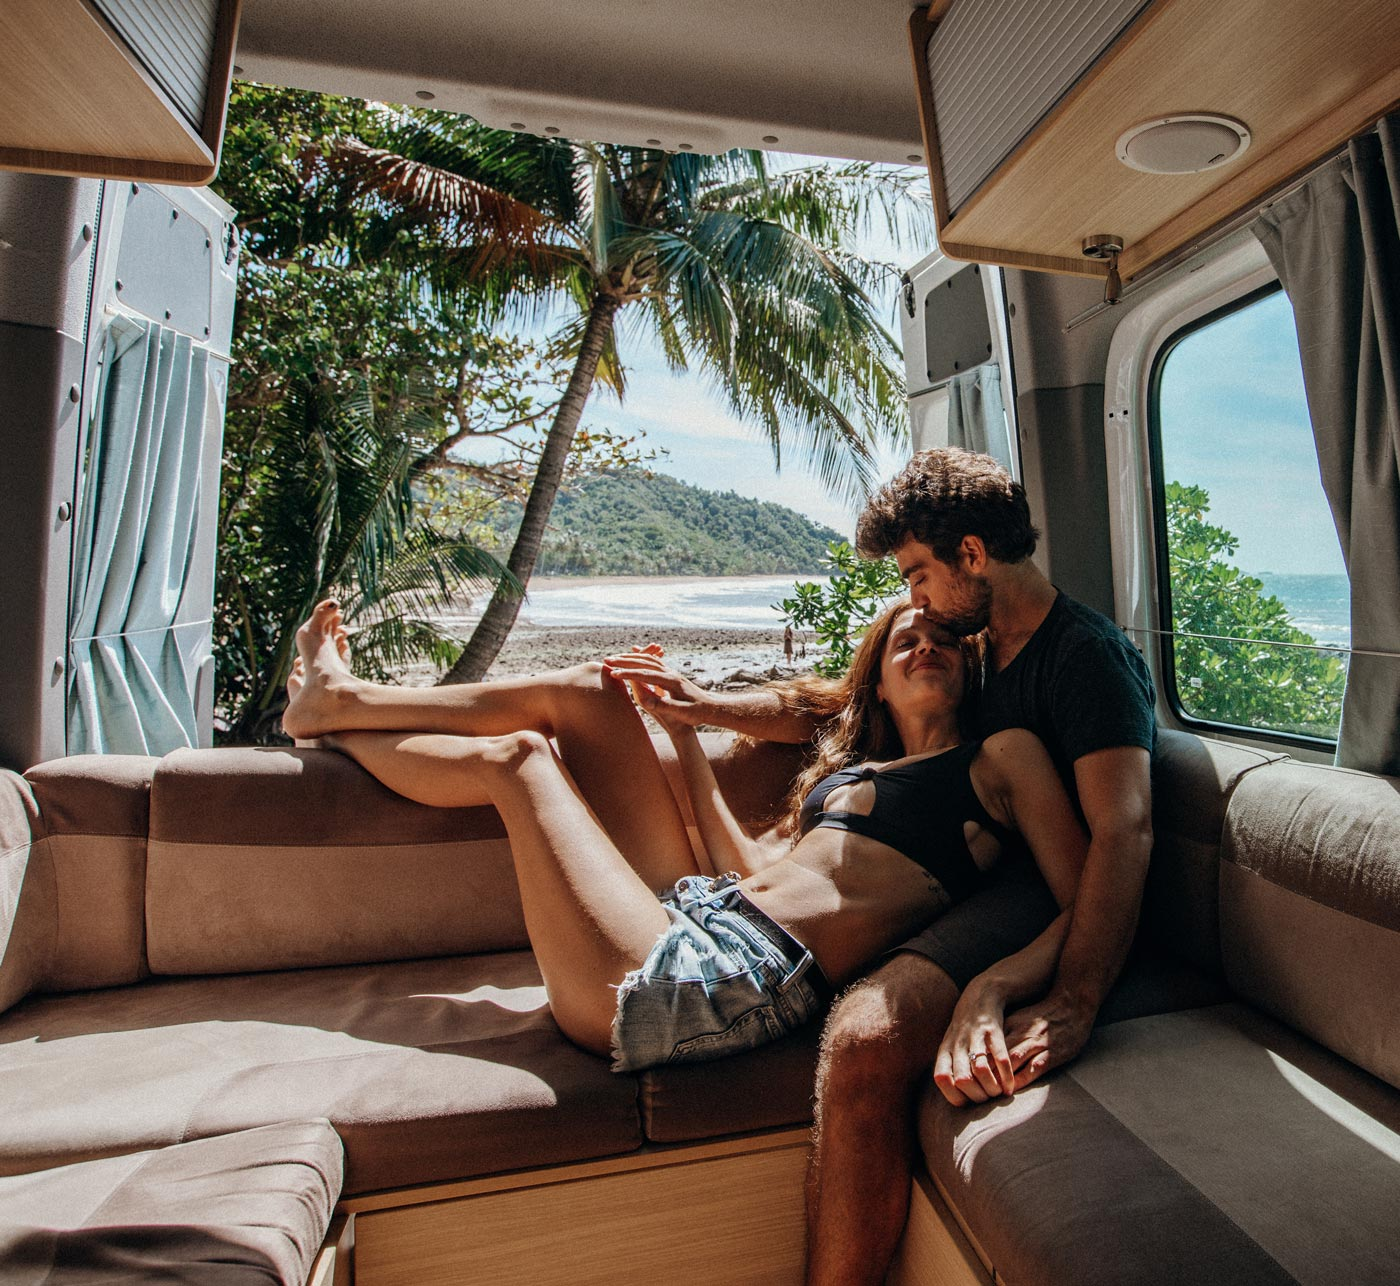 yinon-katerina-campervan-australia-roadtrip-couple-photo